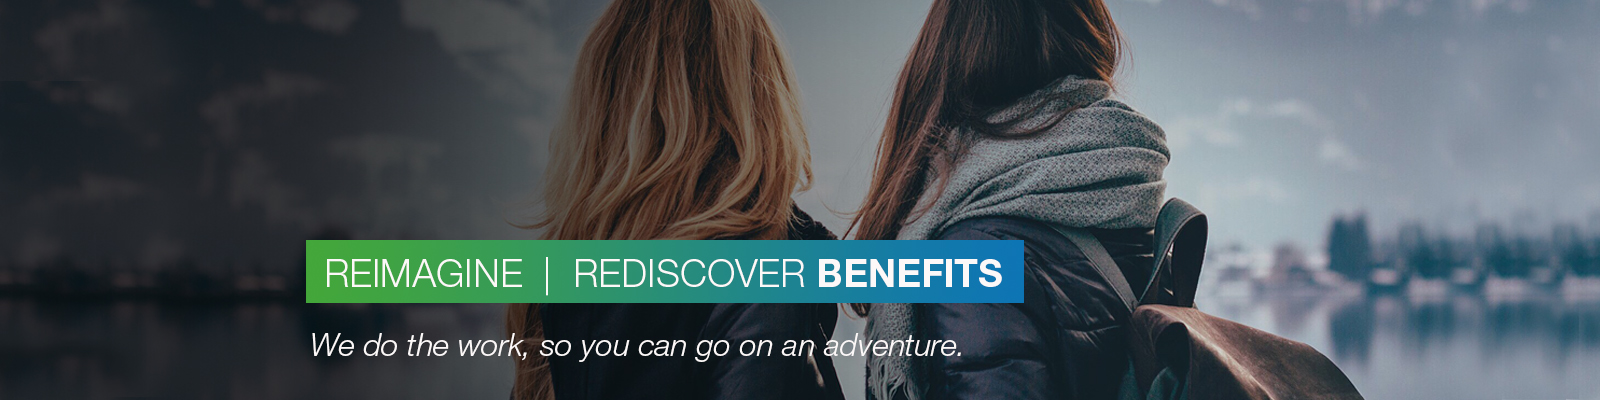 REIMAGINE | REDISCOVER BENEFITS: We do the work, so you can go on an adventure.